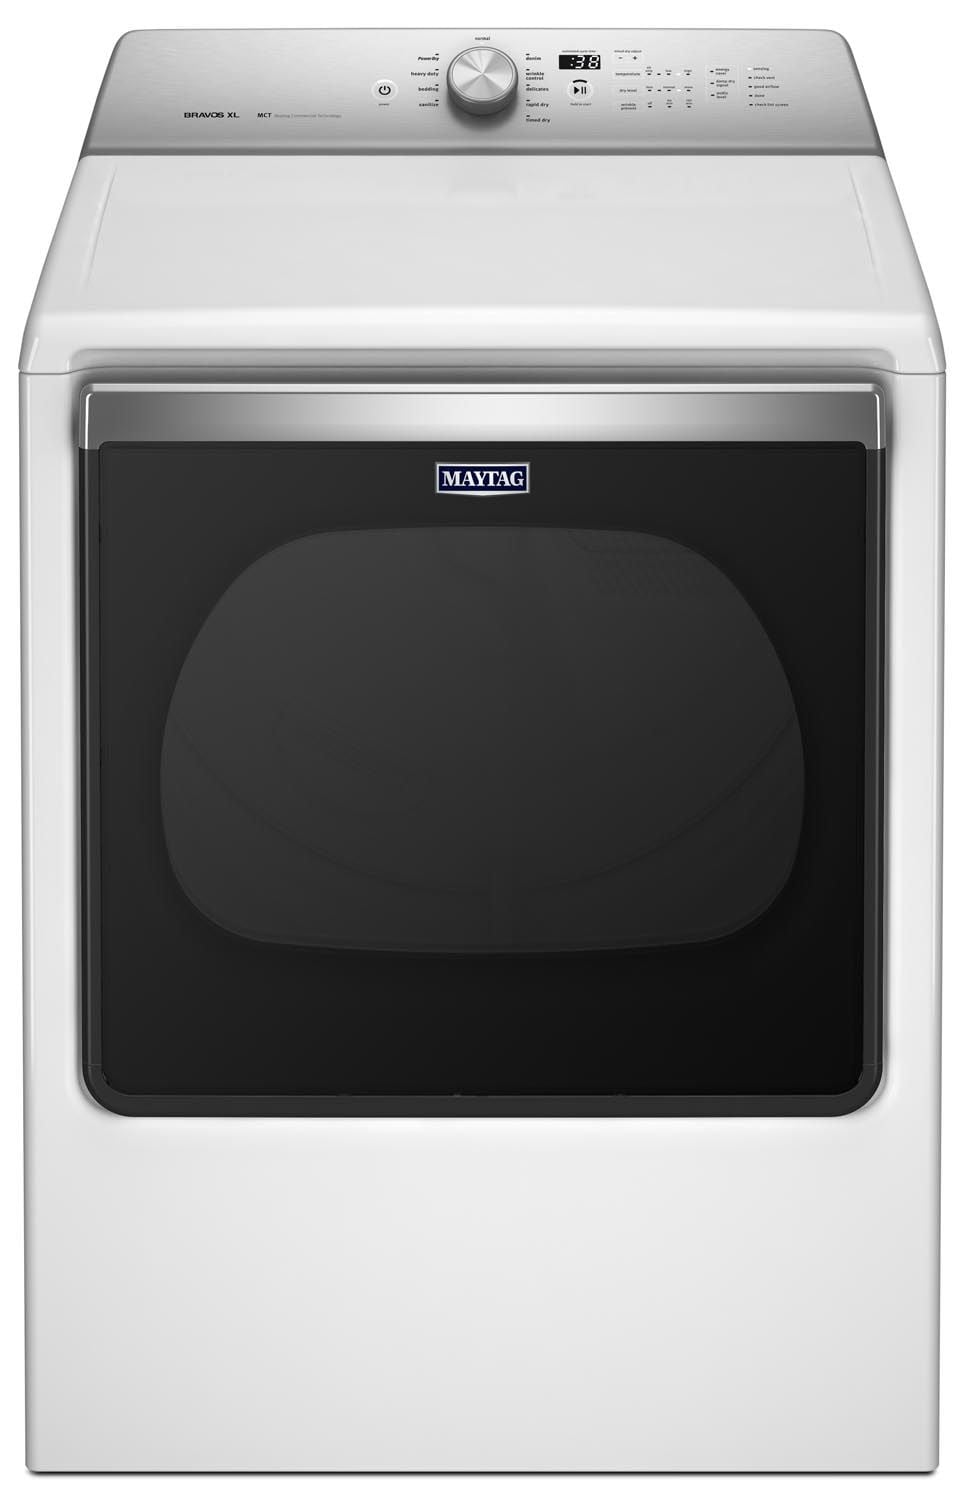 Washers and Dryers - Maytag 8.8 Cu. Ft. Electric Dryer – YMEDB835DW